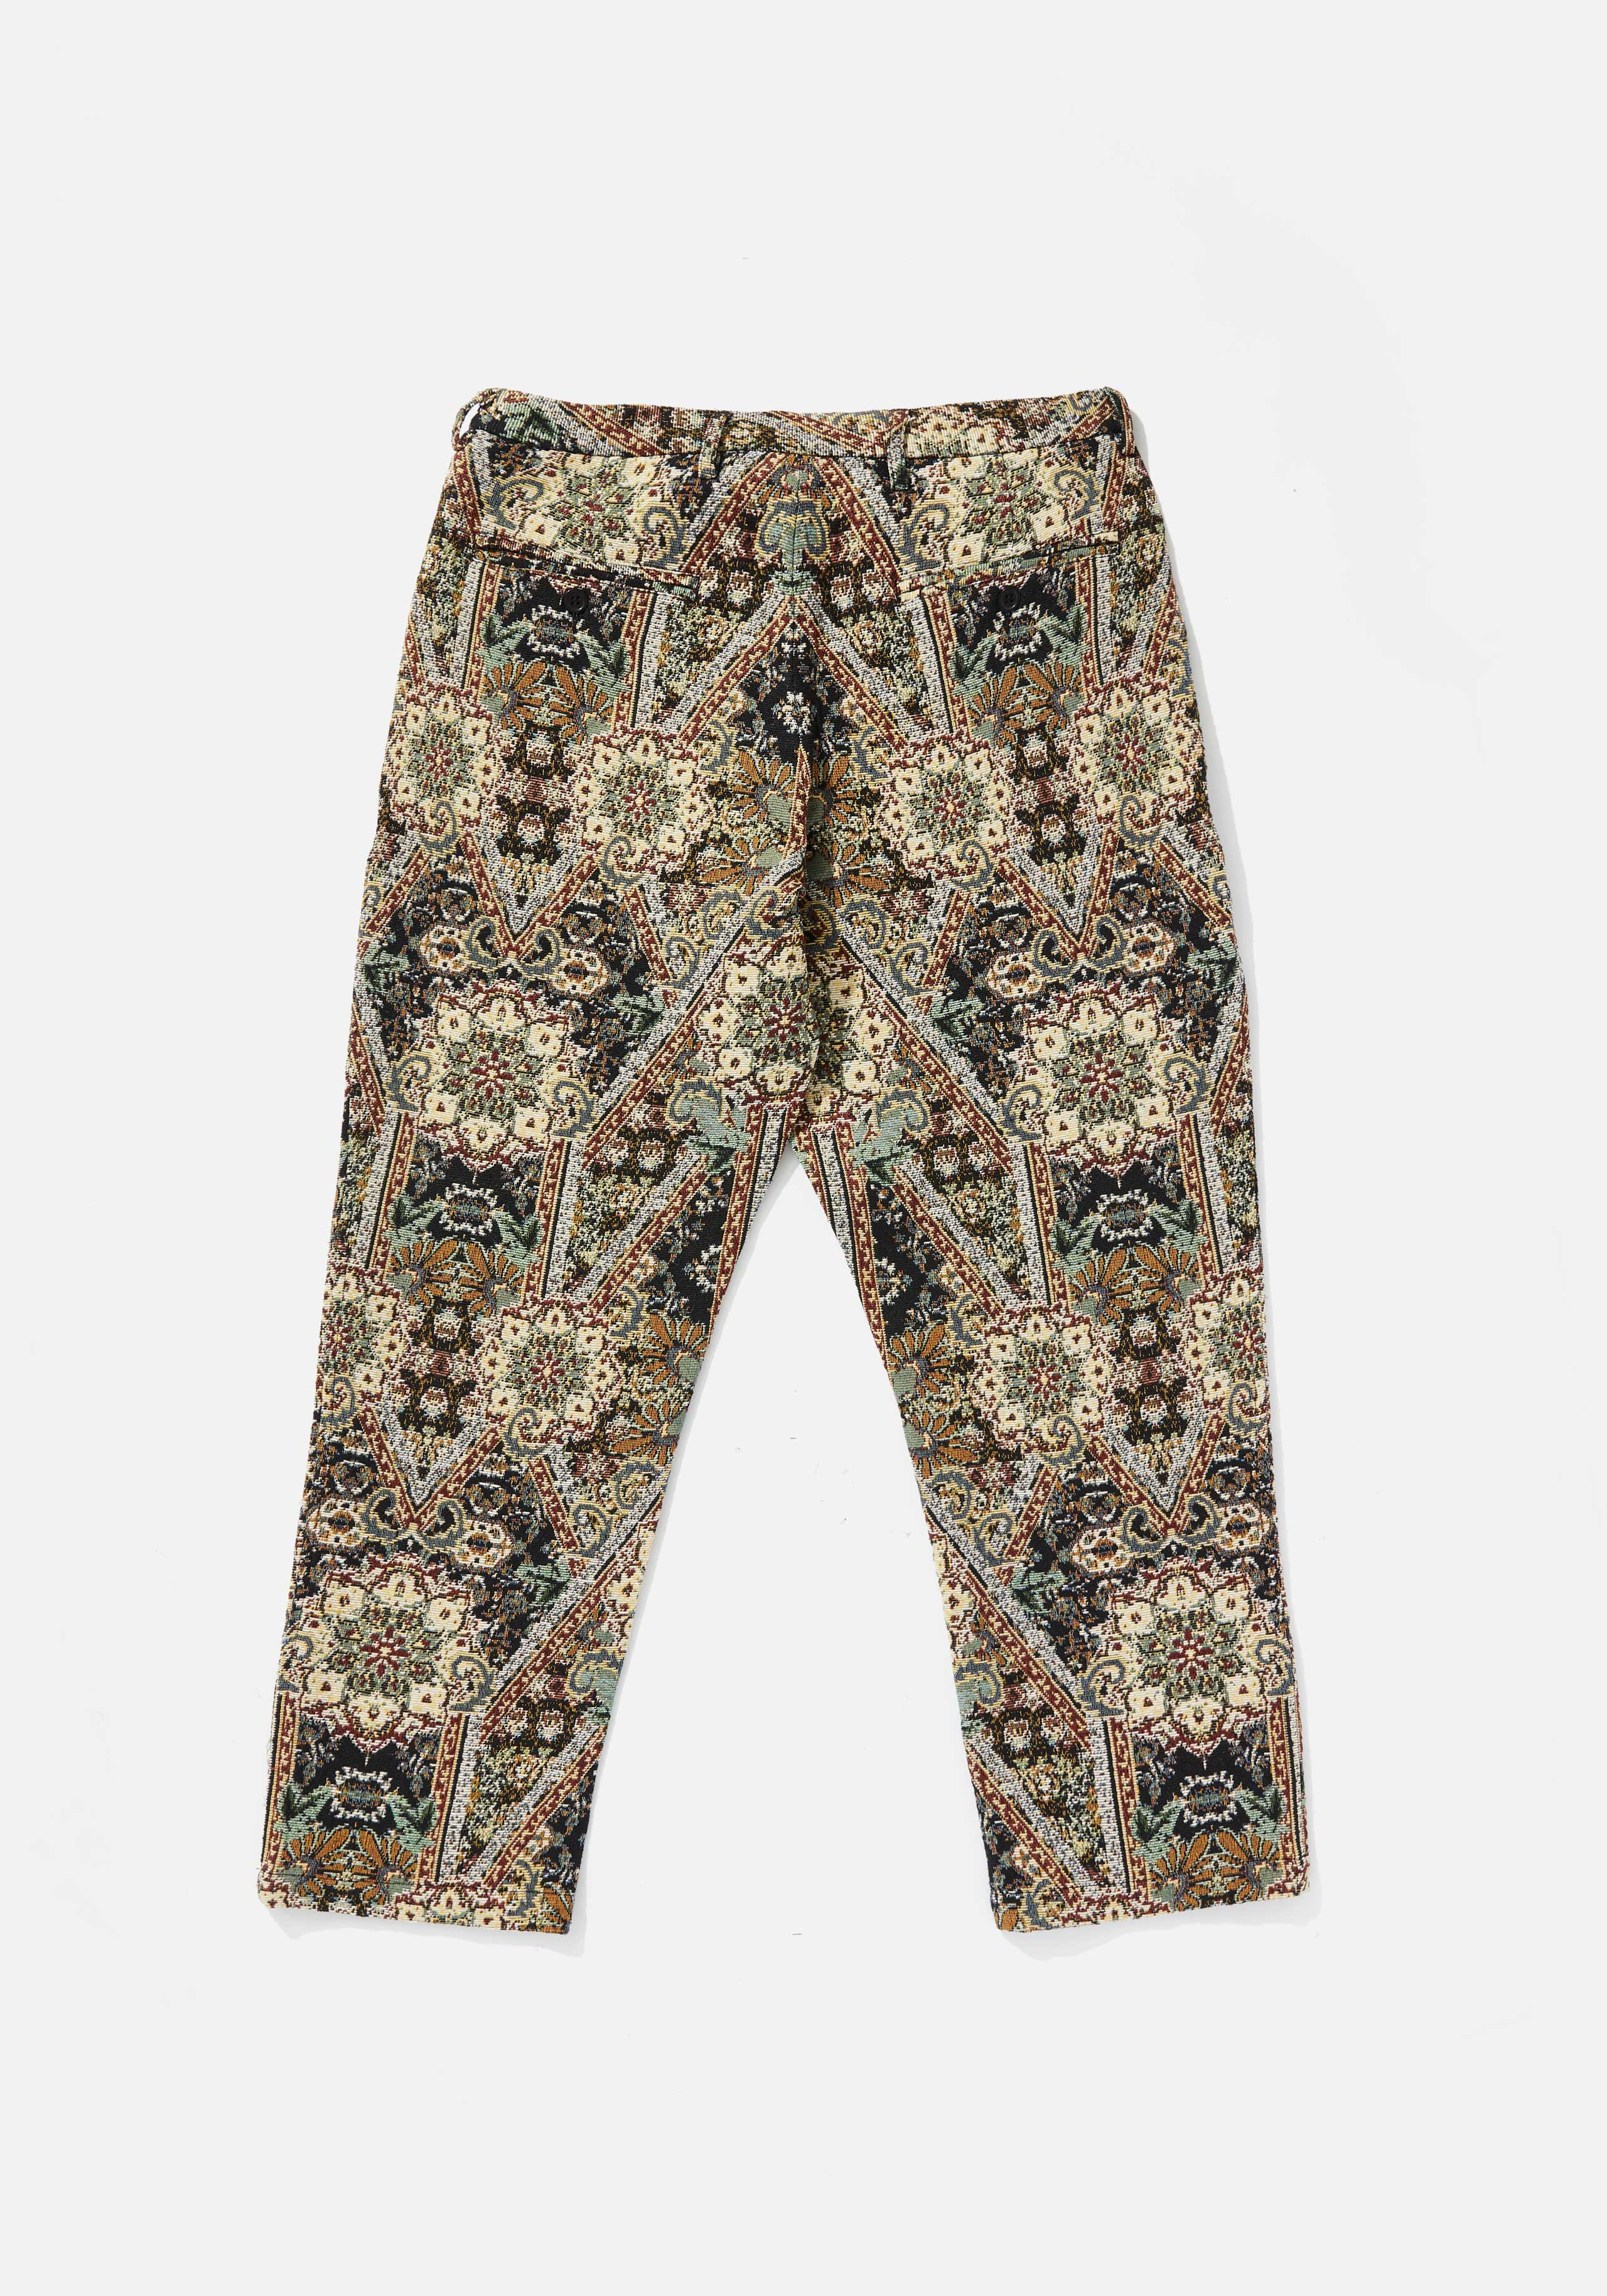 mki tapestry trousers 2